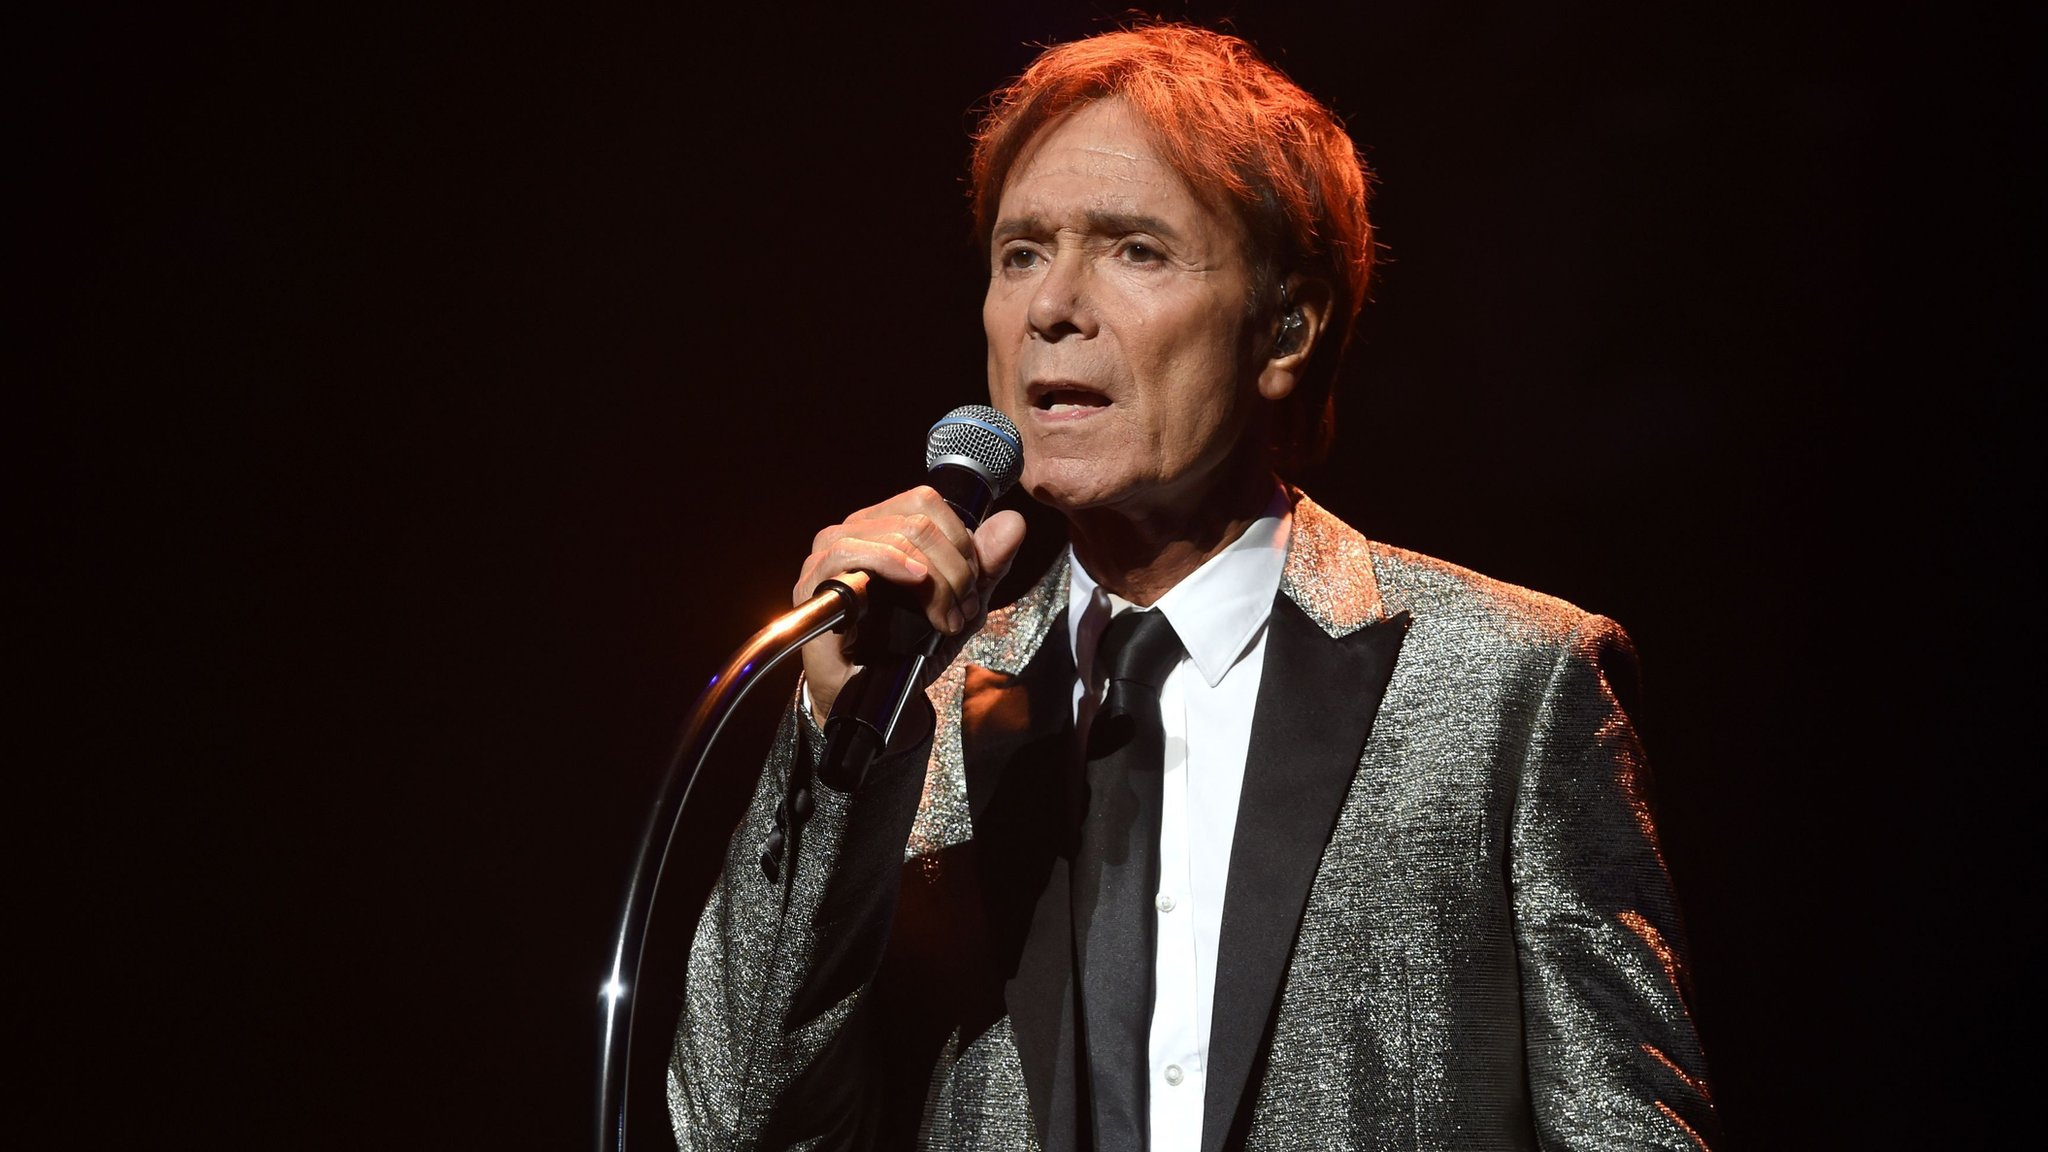 BBC News - Cliff Richard starts legal action against BBC and South Yorkshire Police